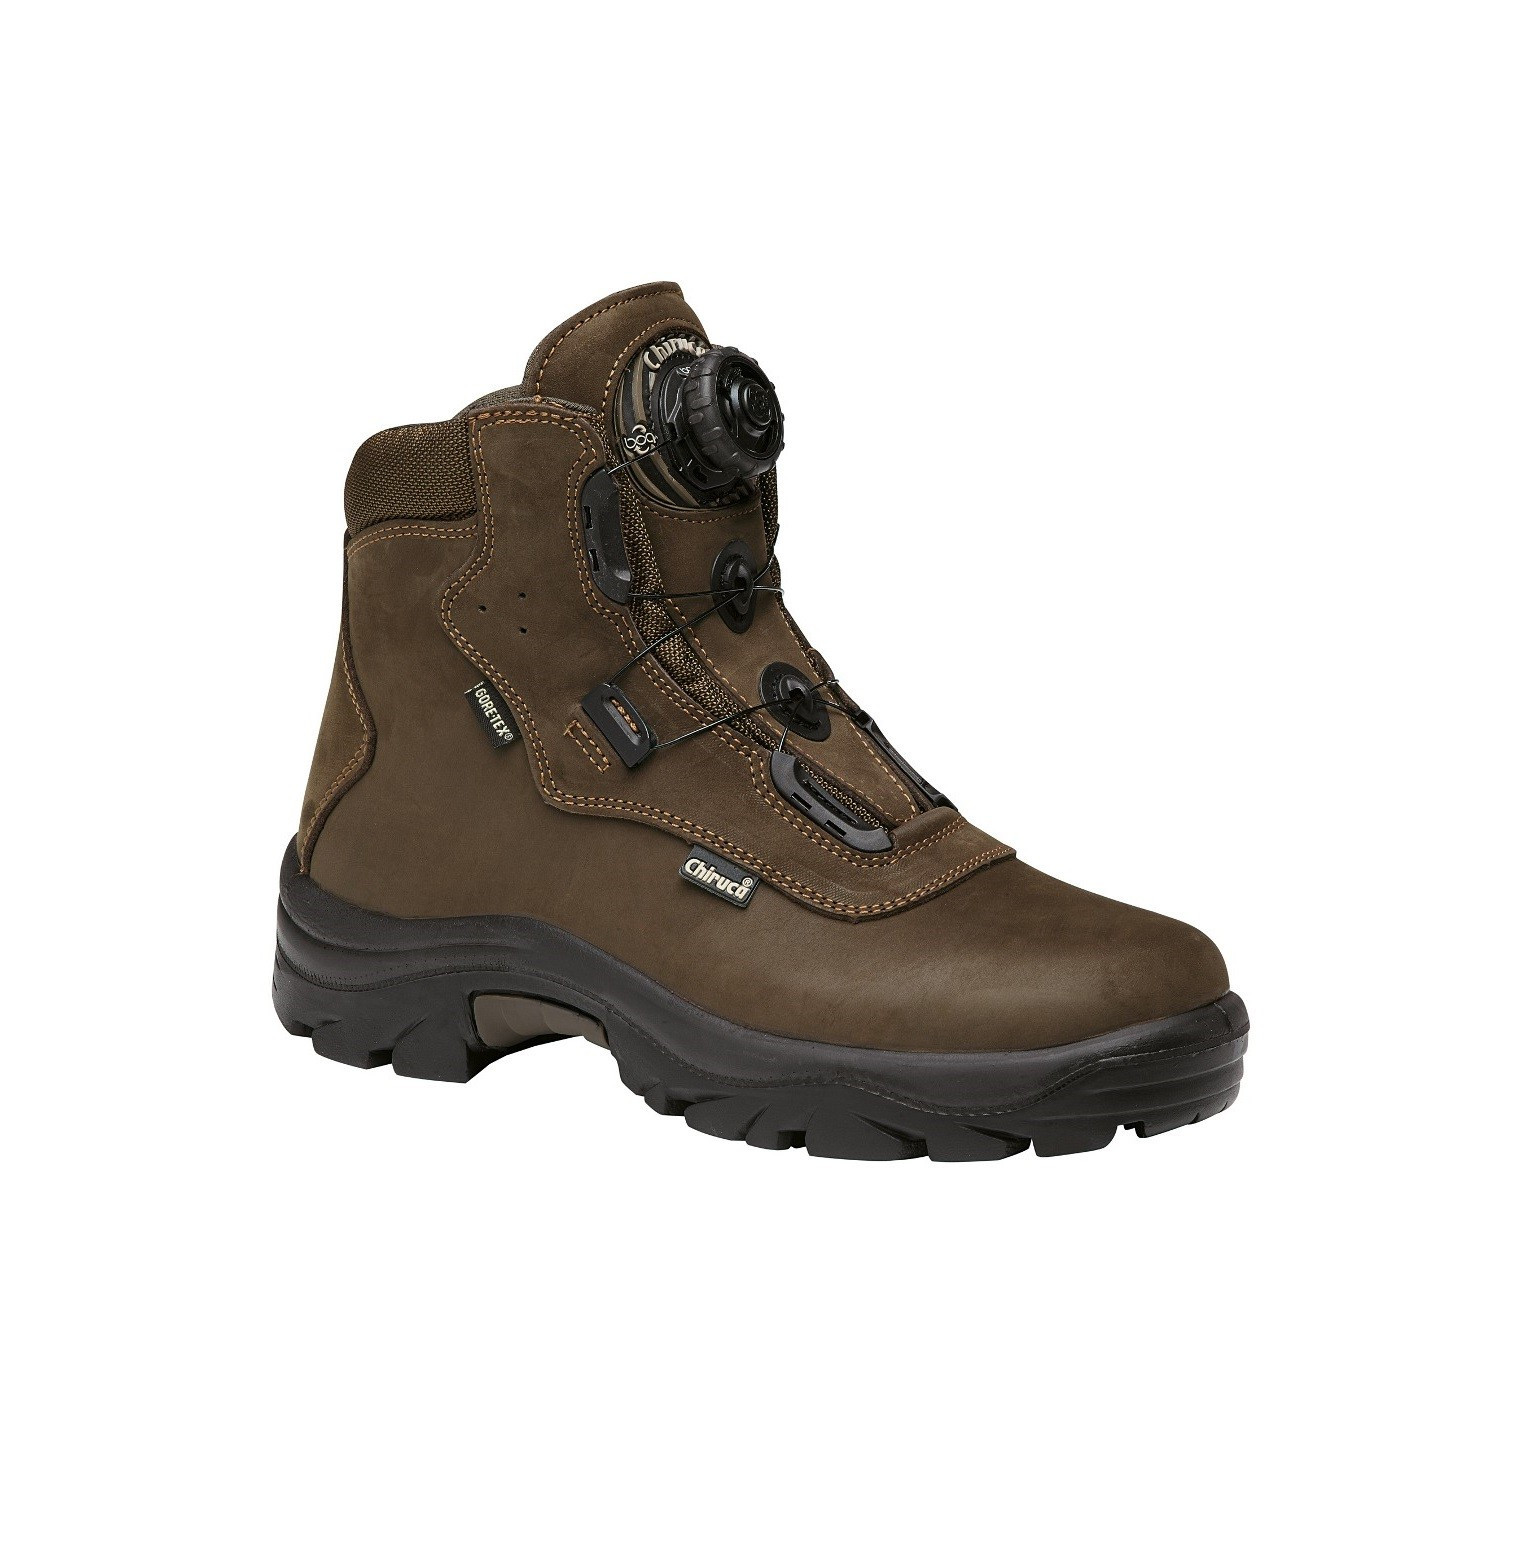 Chaussures Chaussures Labrador Boa GTX Chiruca - 1